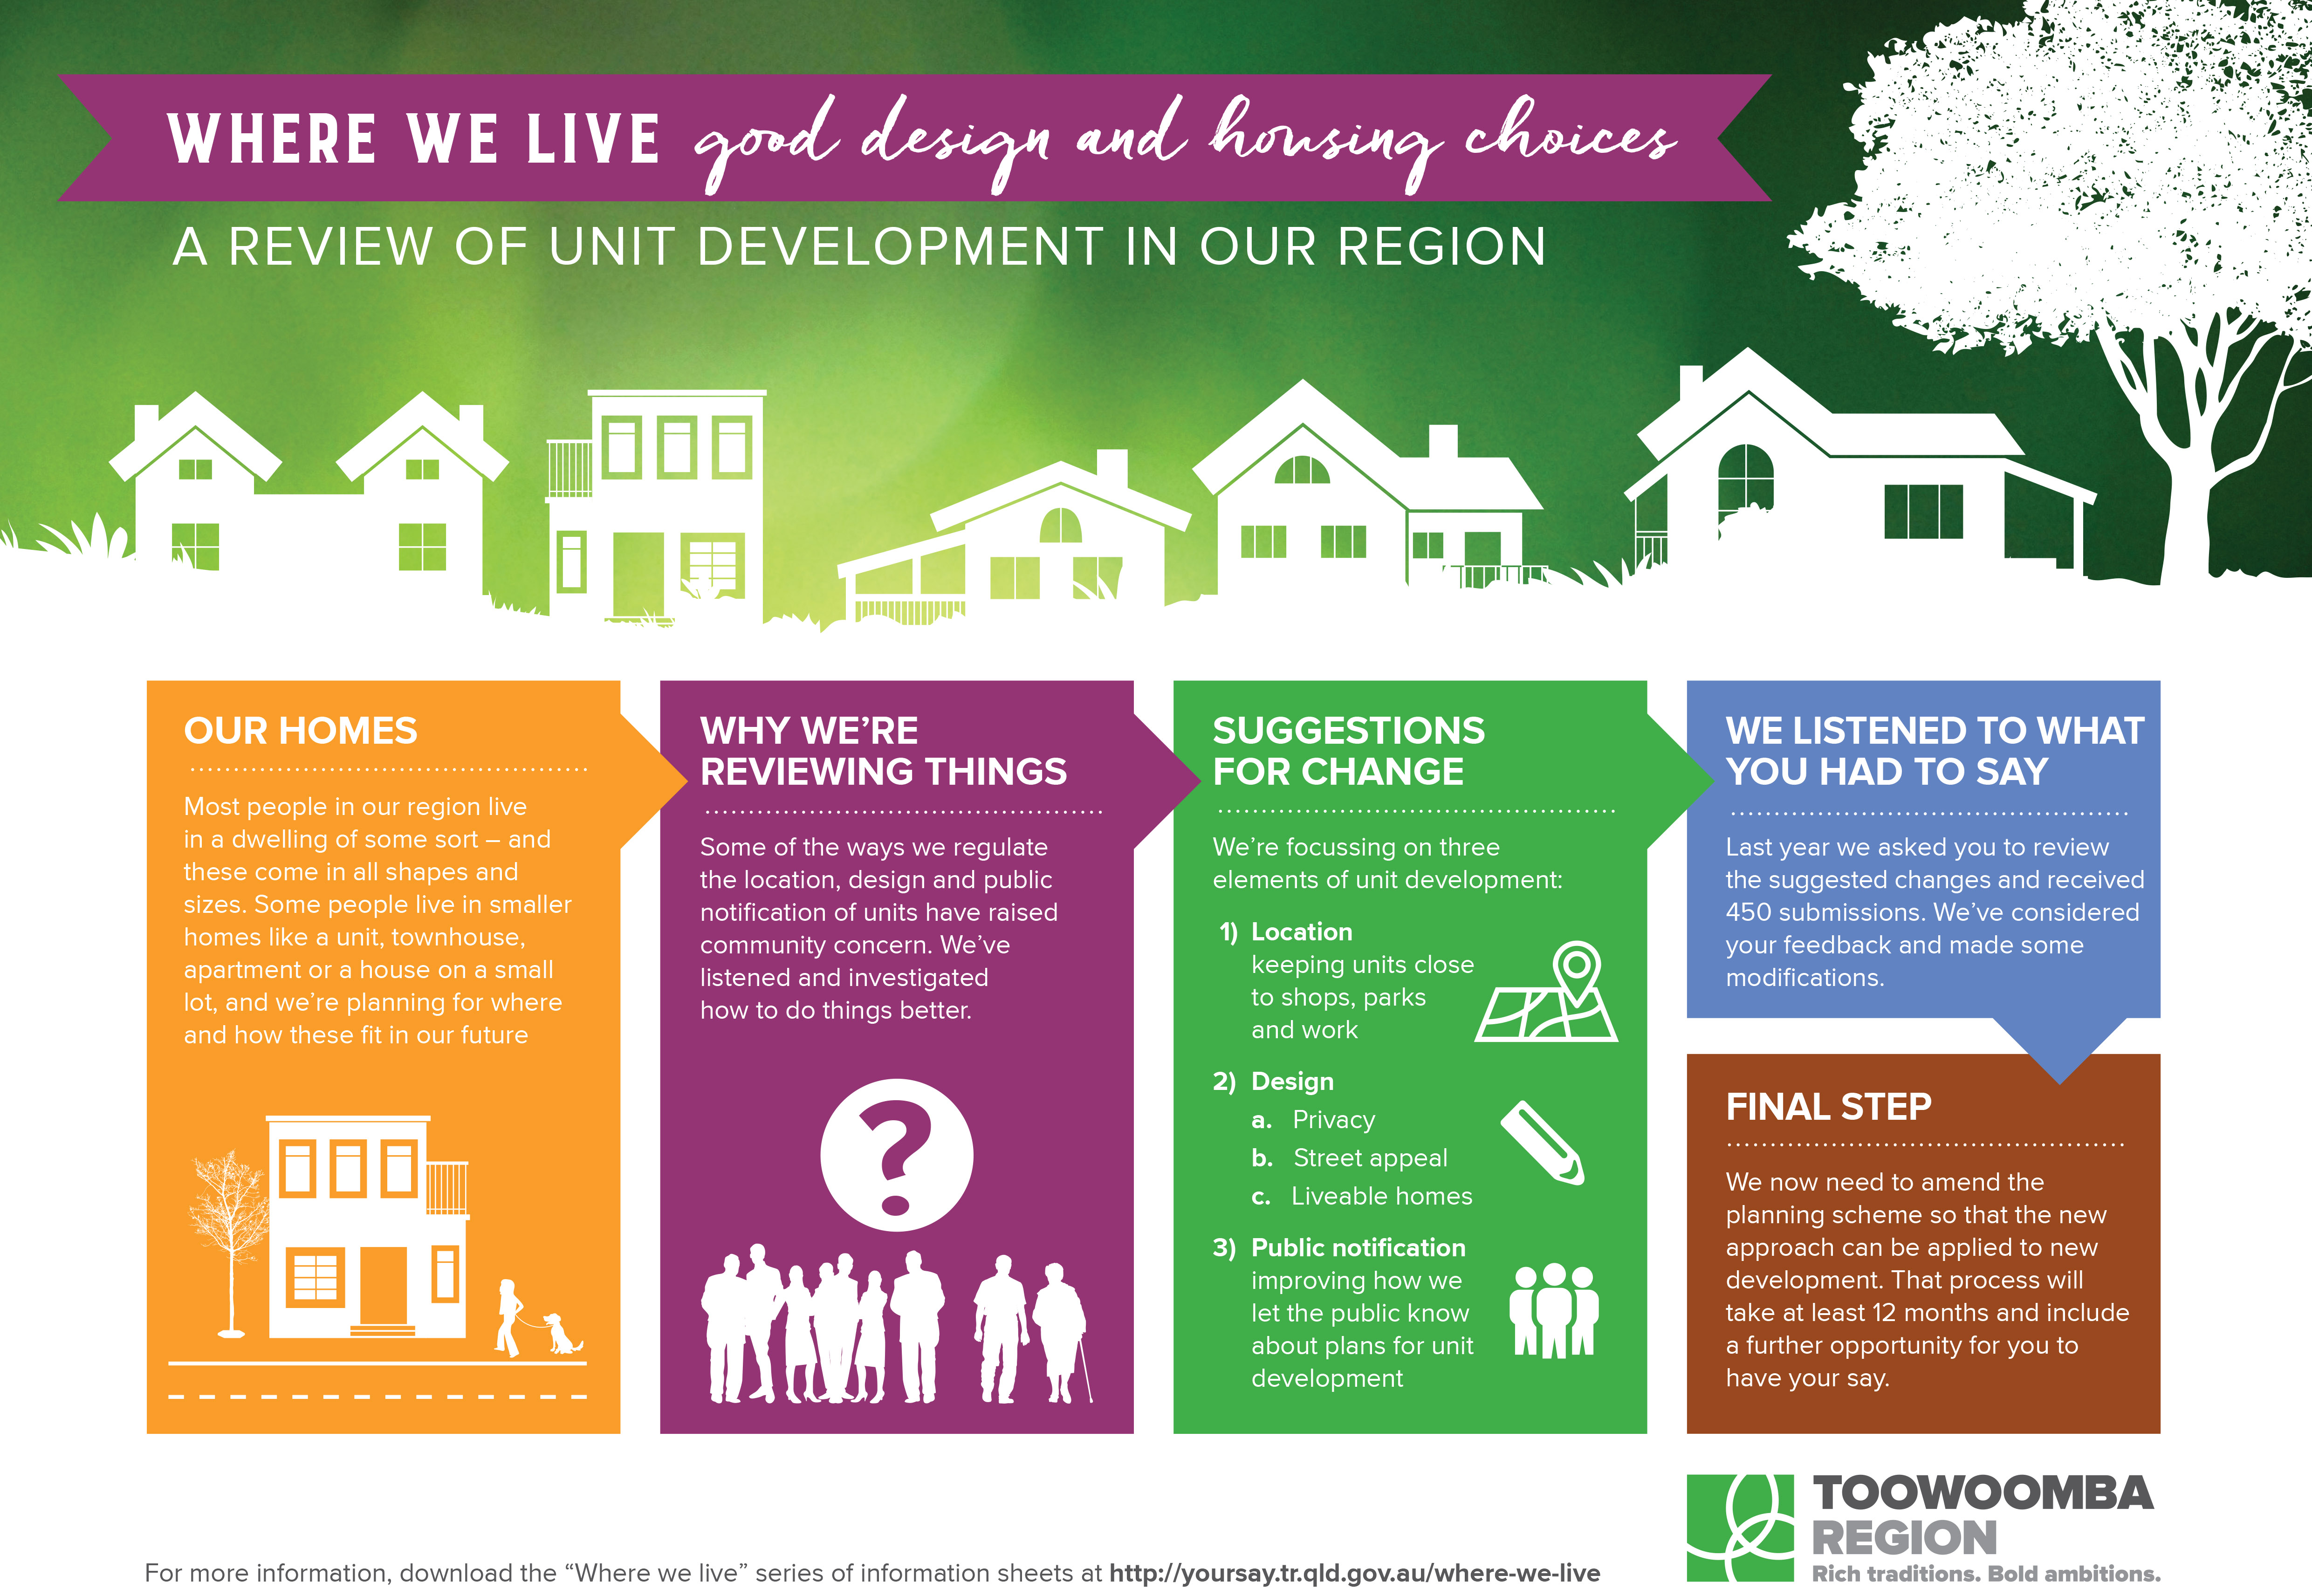 Where We Live Good Design And Housing Choices Have Your Say Trc